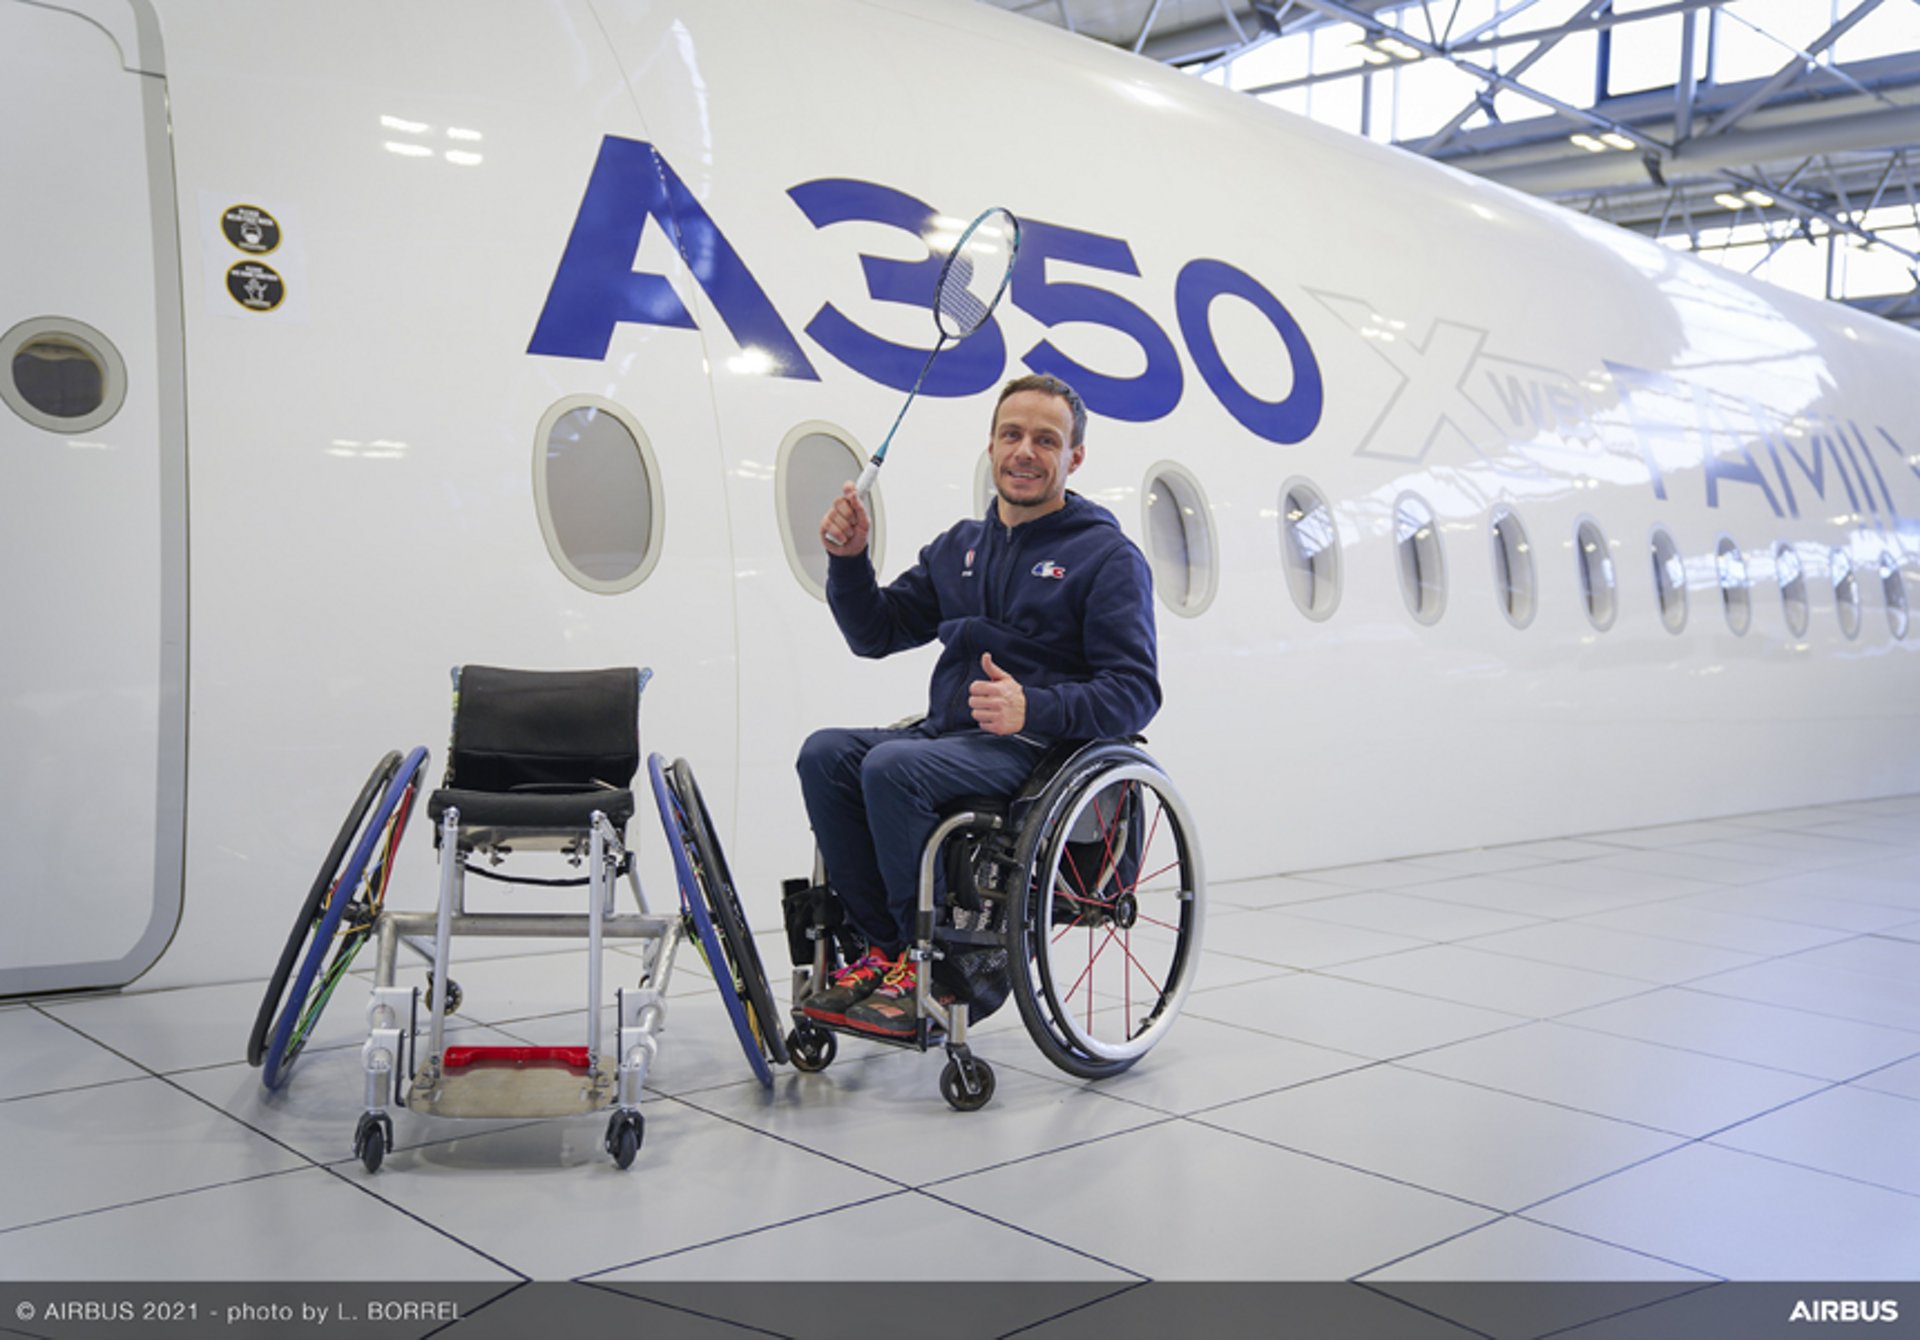 Airbus engineers have designed and developed a high-performance wheelchair that is specially adapted to French para-badminton champion David Toupé's needs.